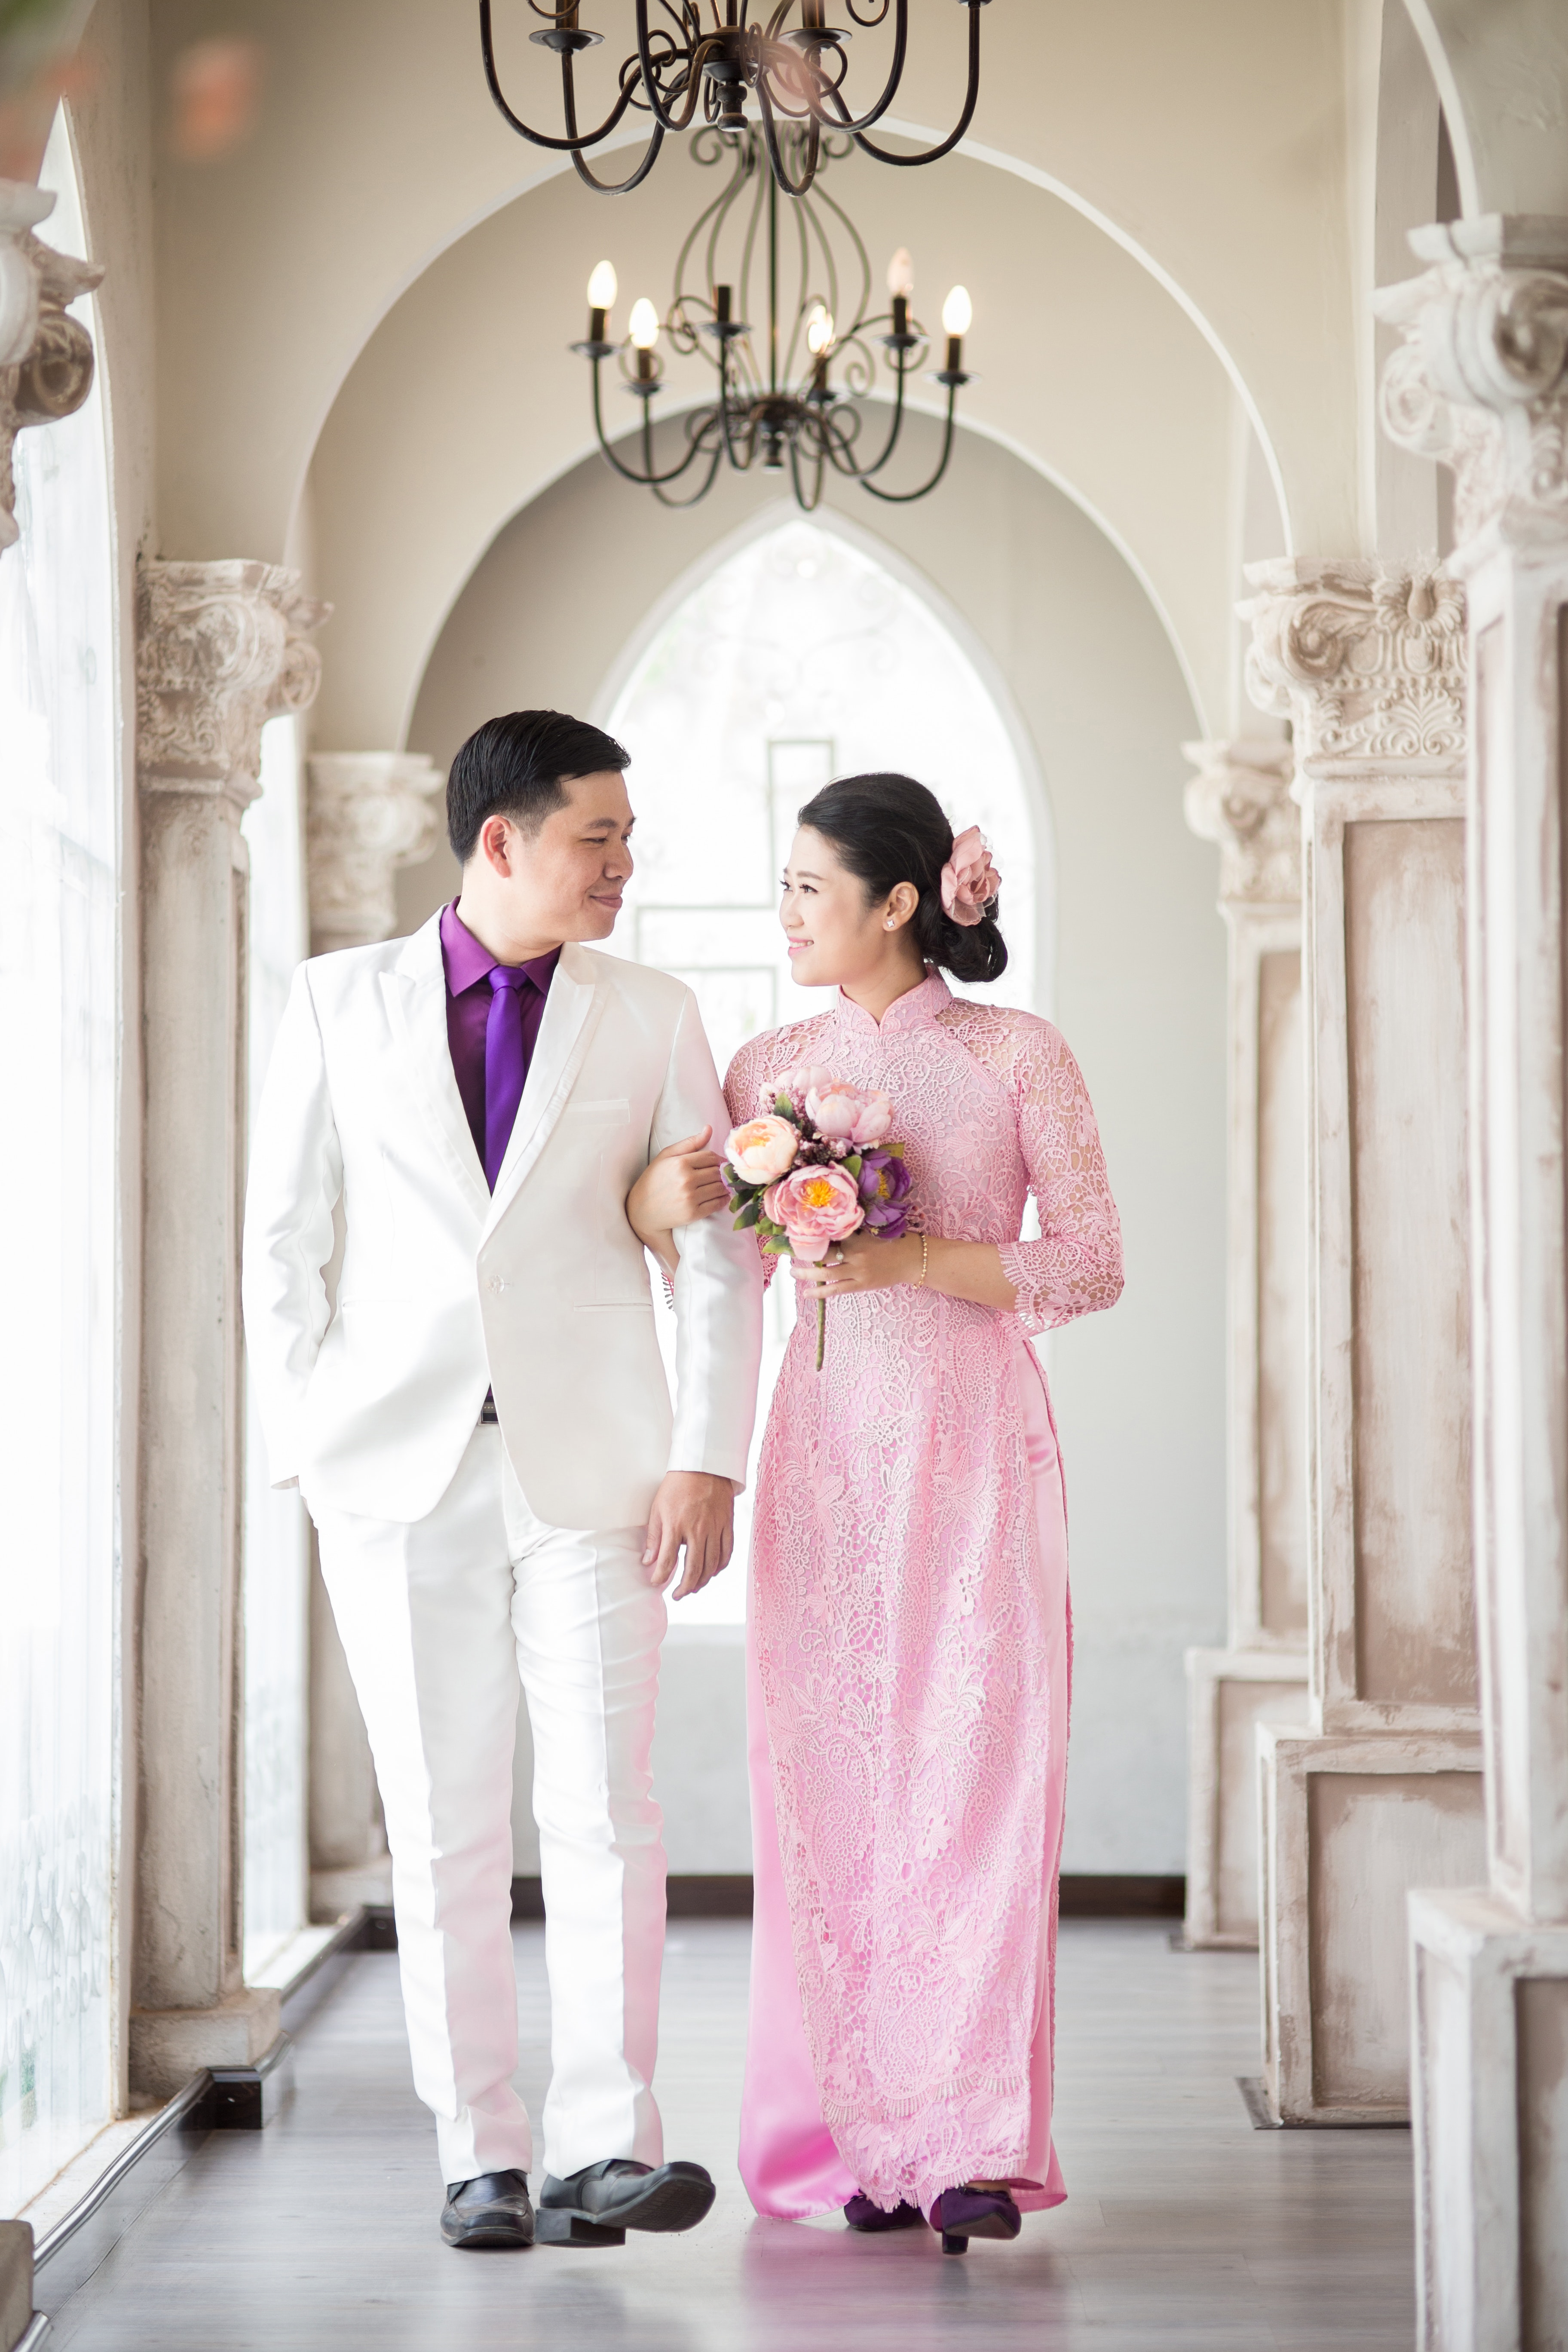 Wedding Culture: What to wear and how it's different 5